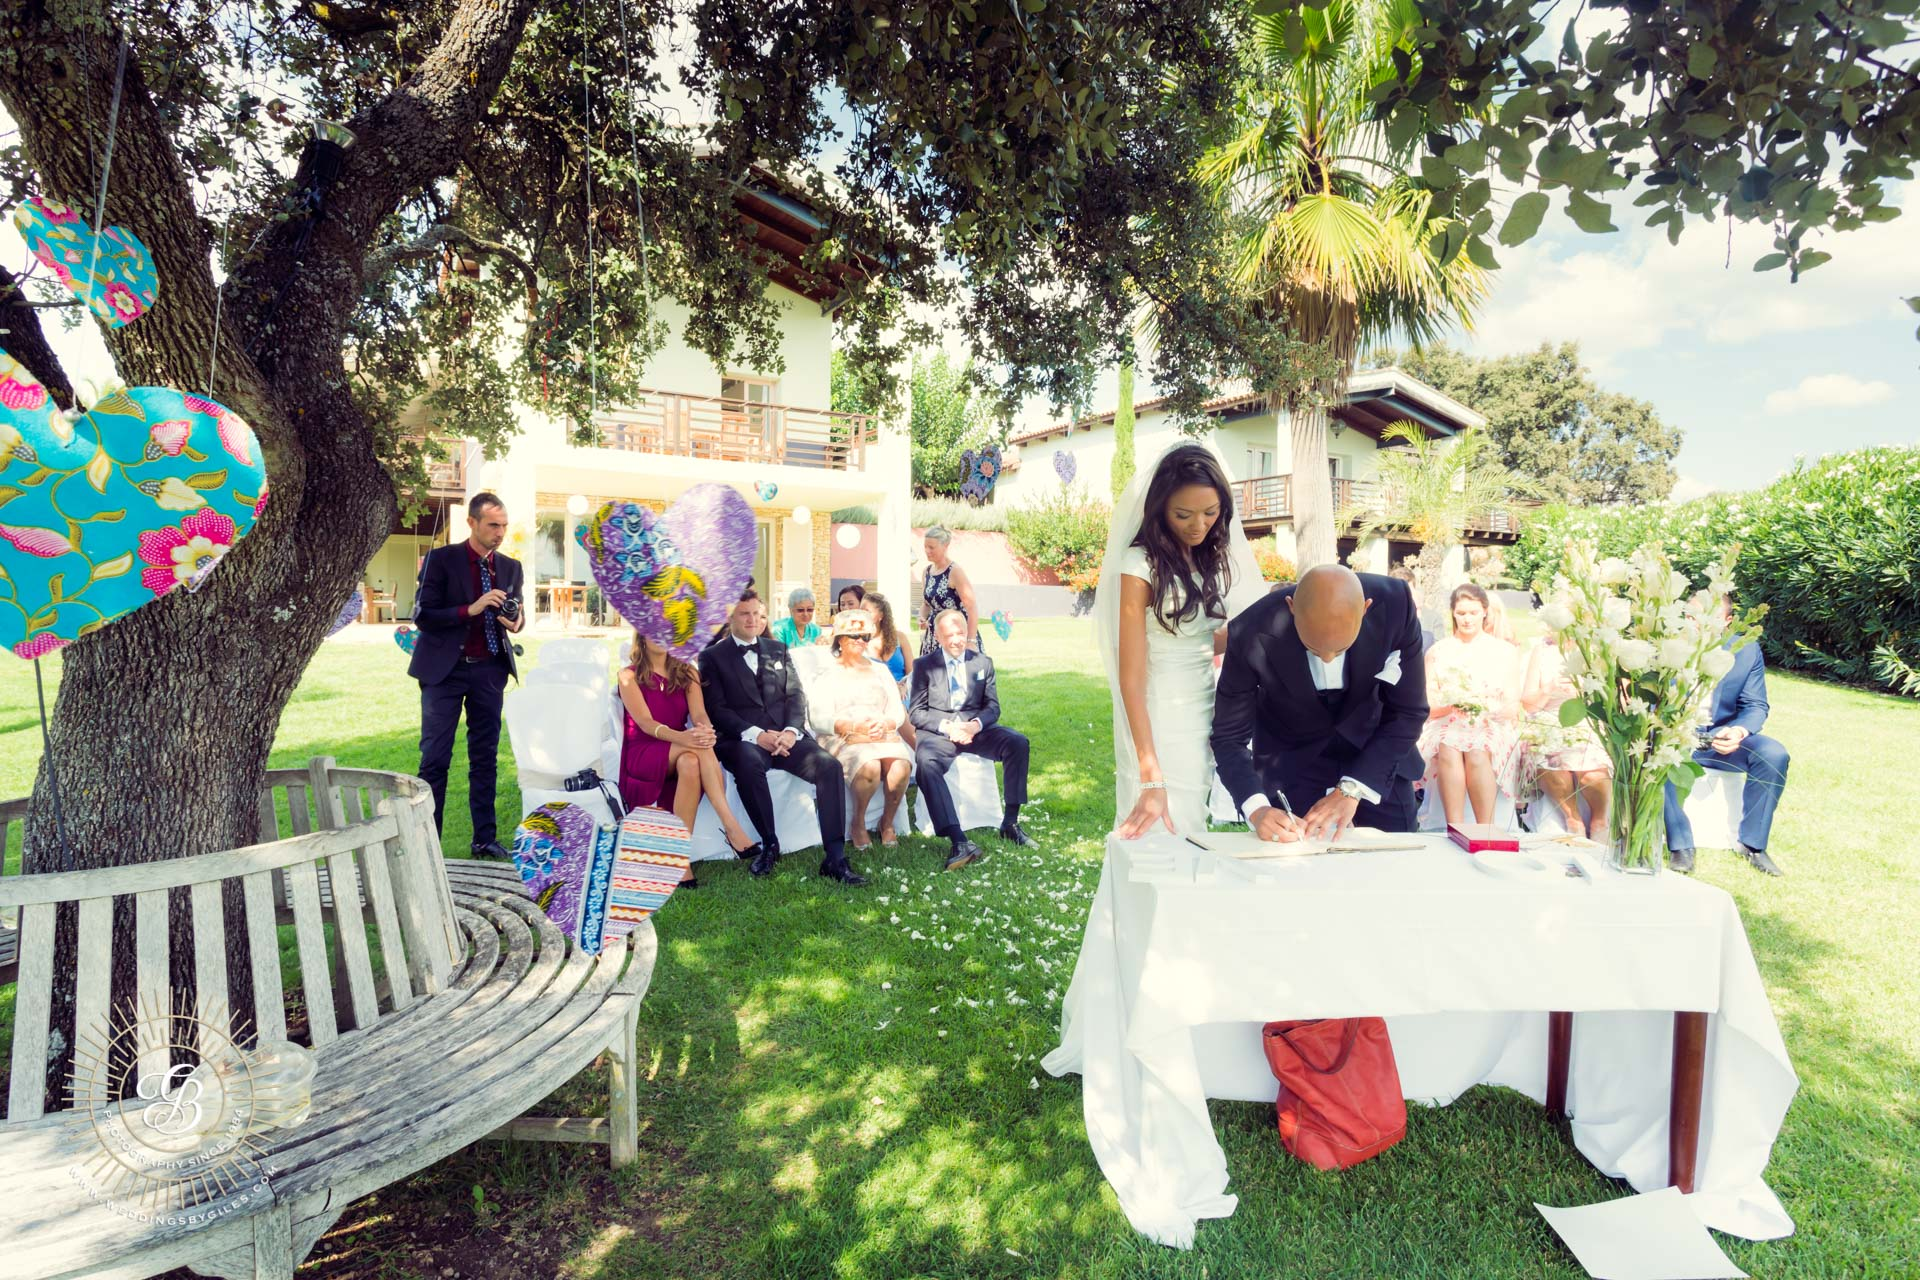 Signing of the wedding register